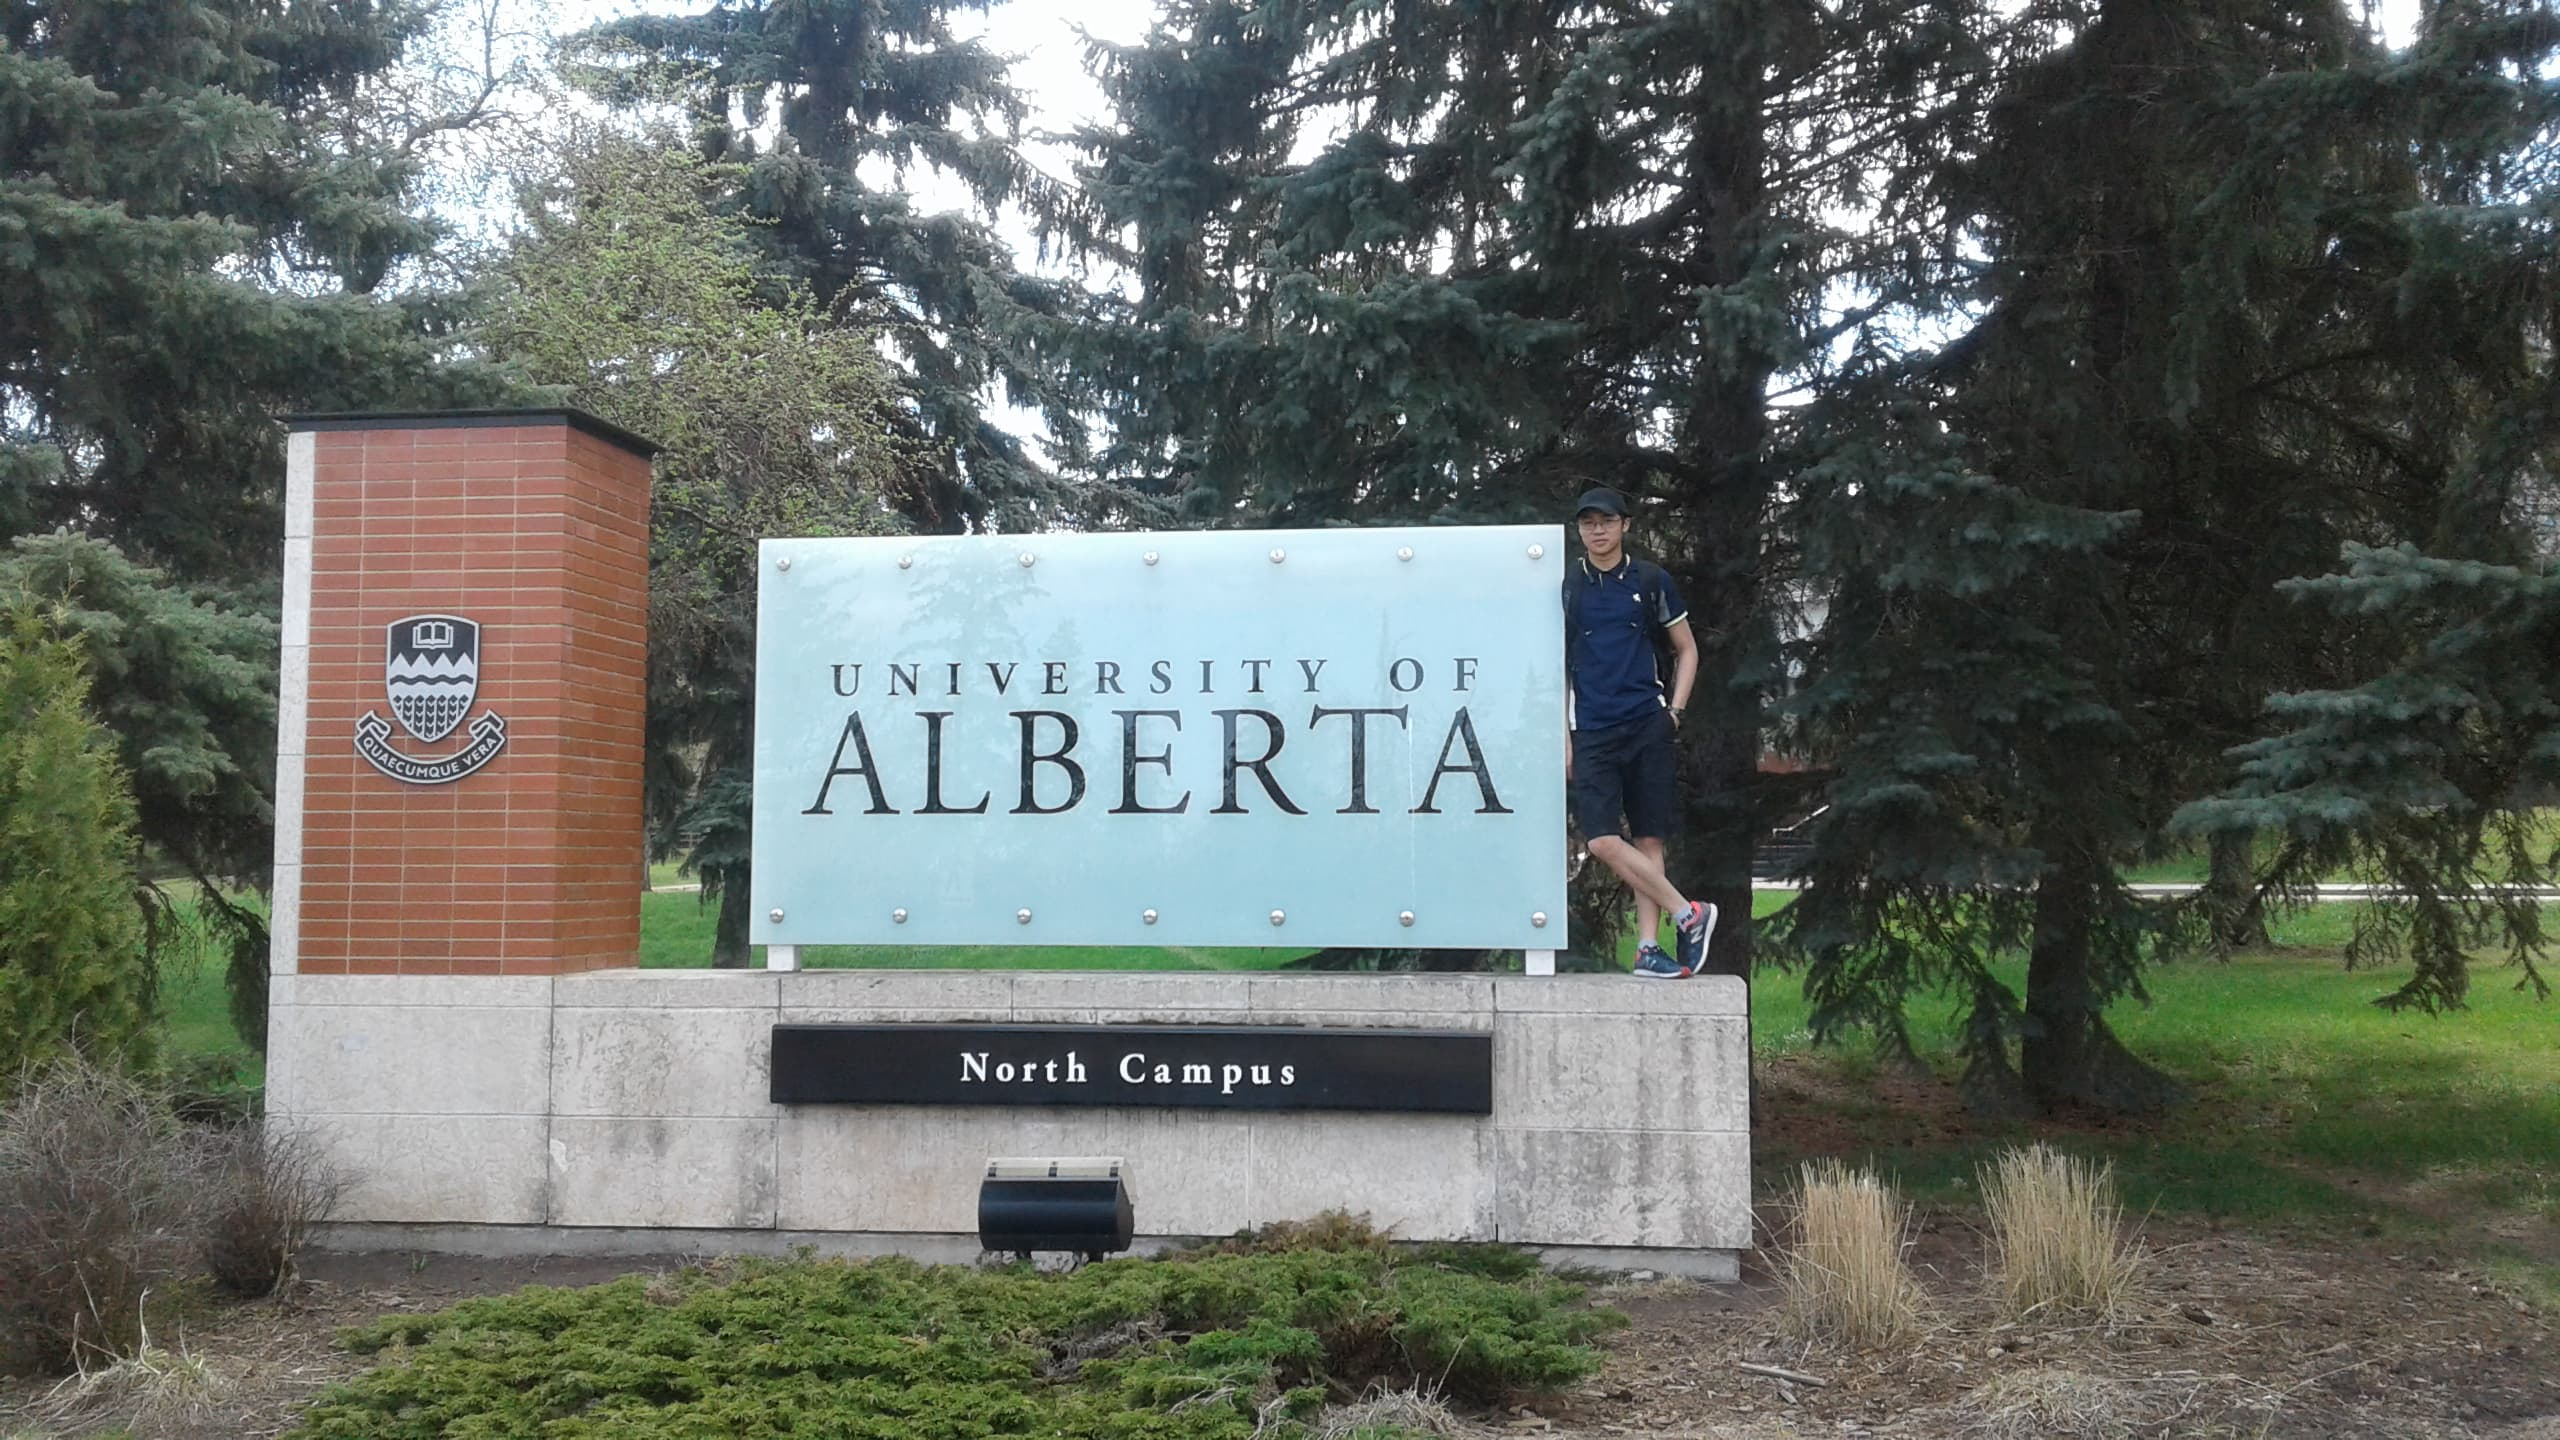 man standing with university of alberta sign